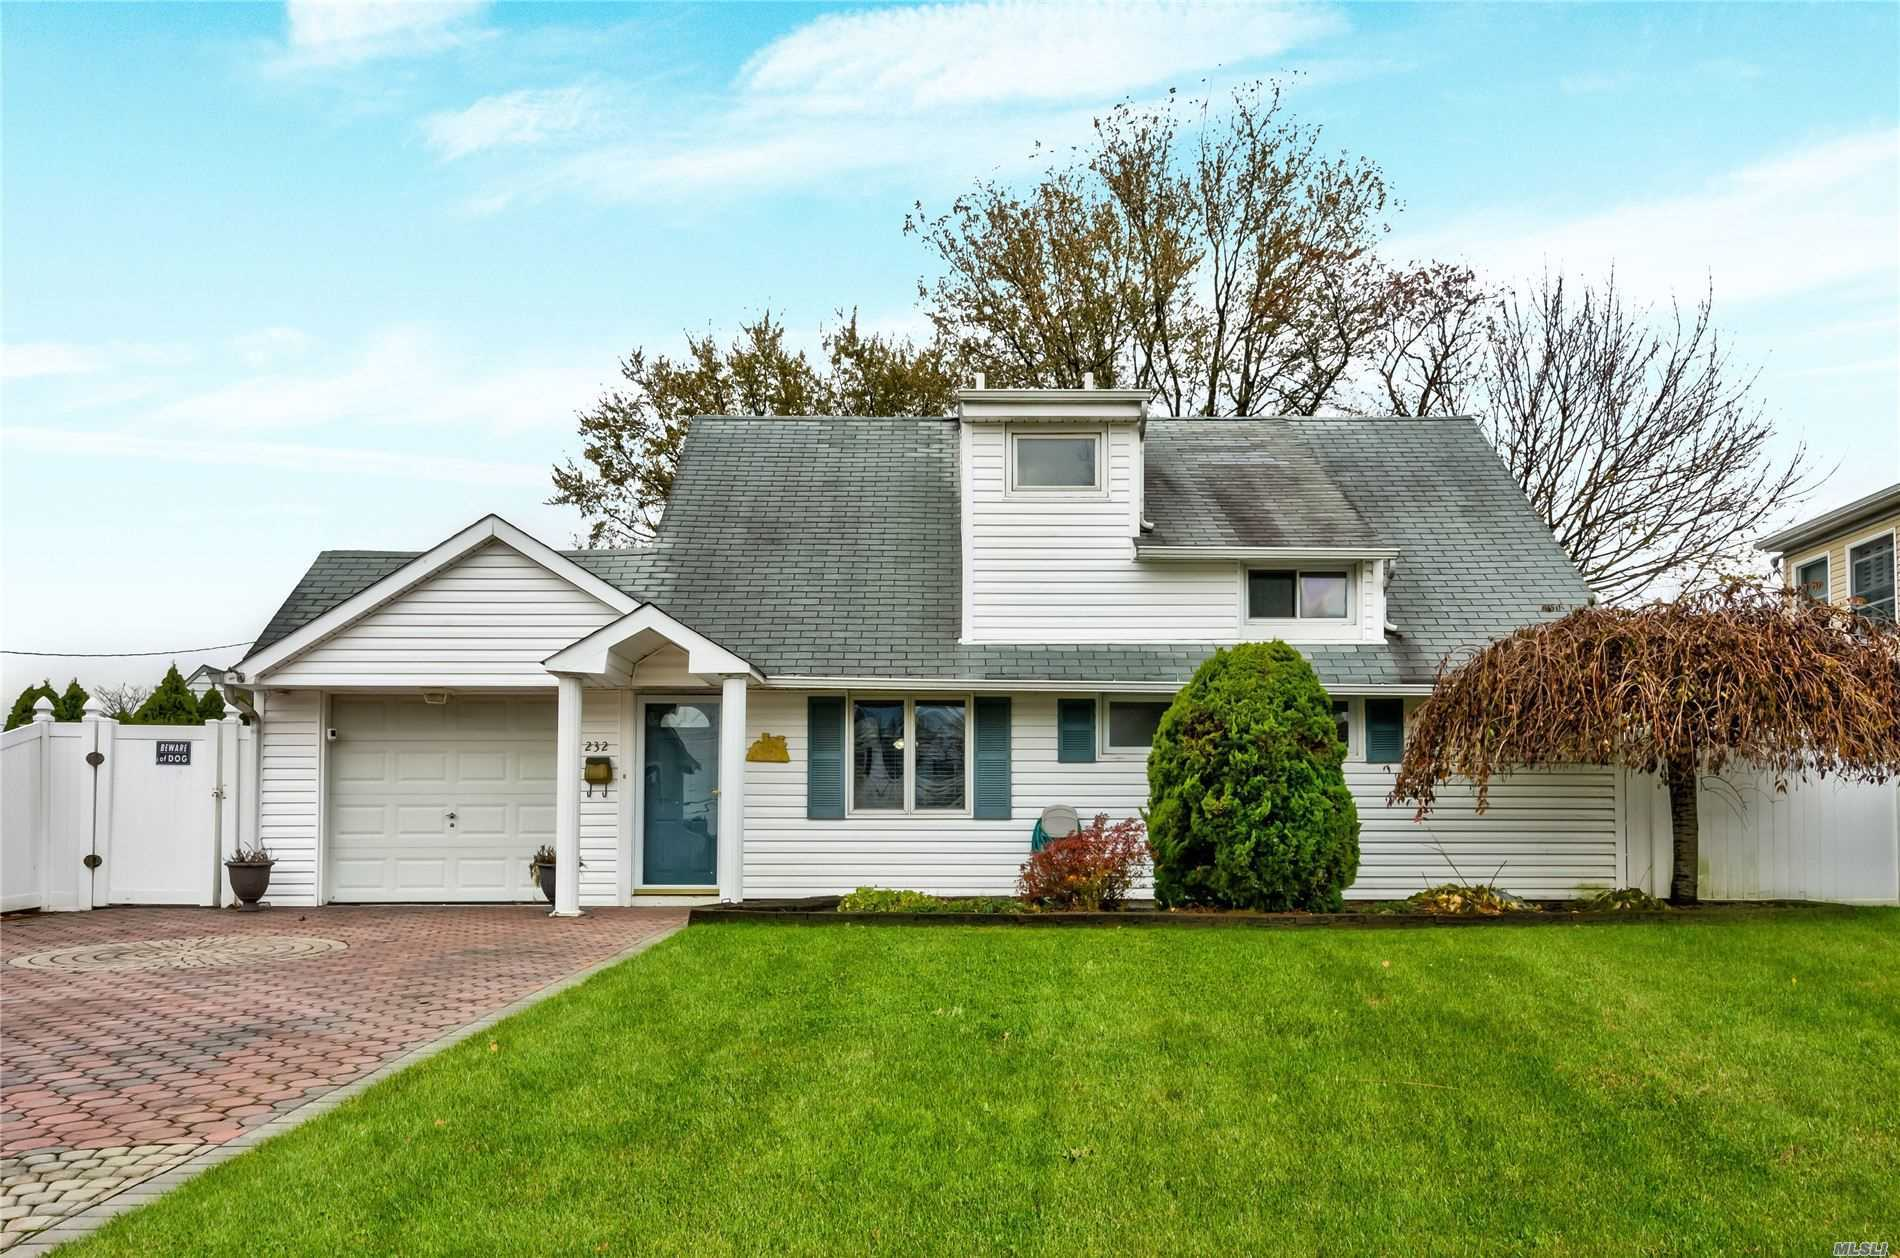 232 Blueberry Ln 11801 - One of Hicksville Homes for Sale